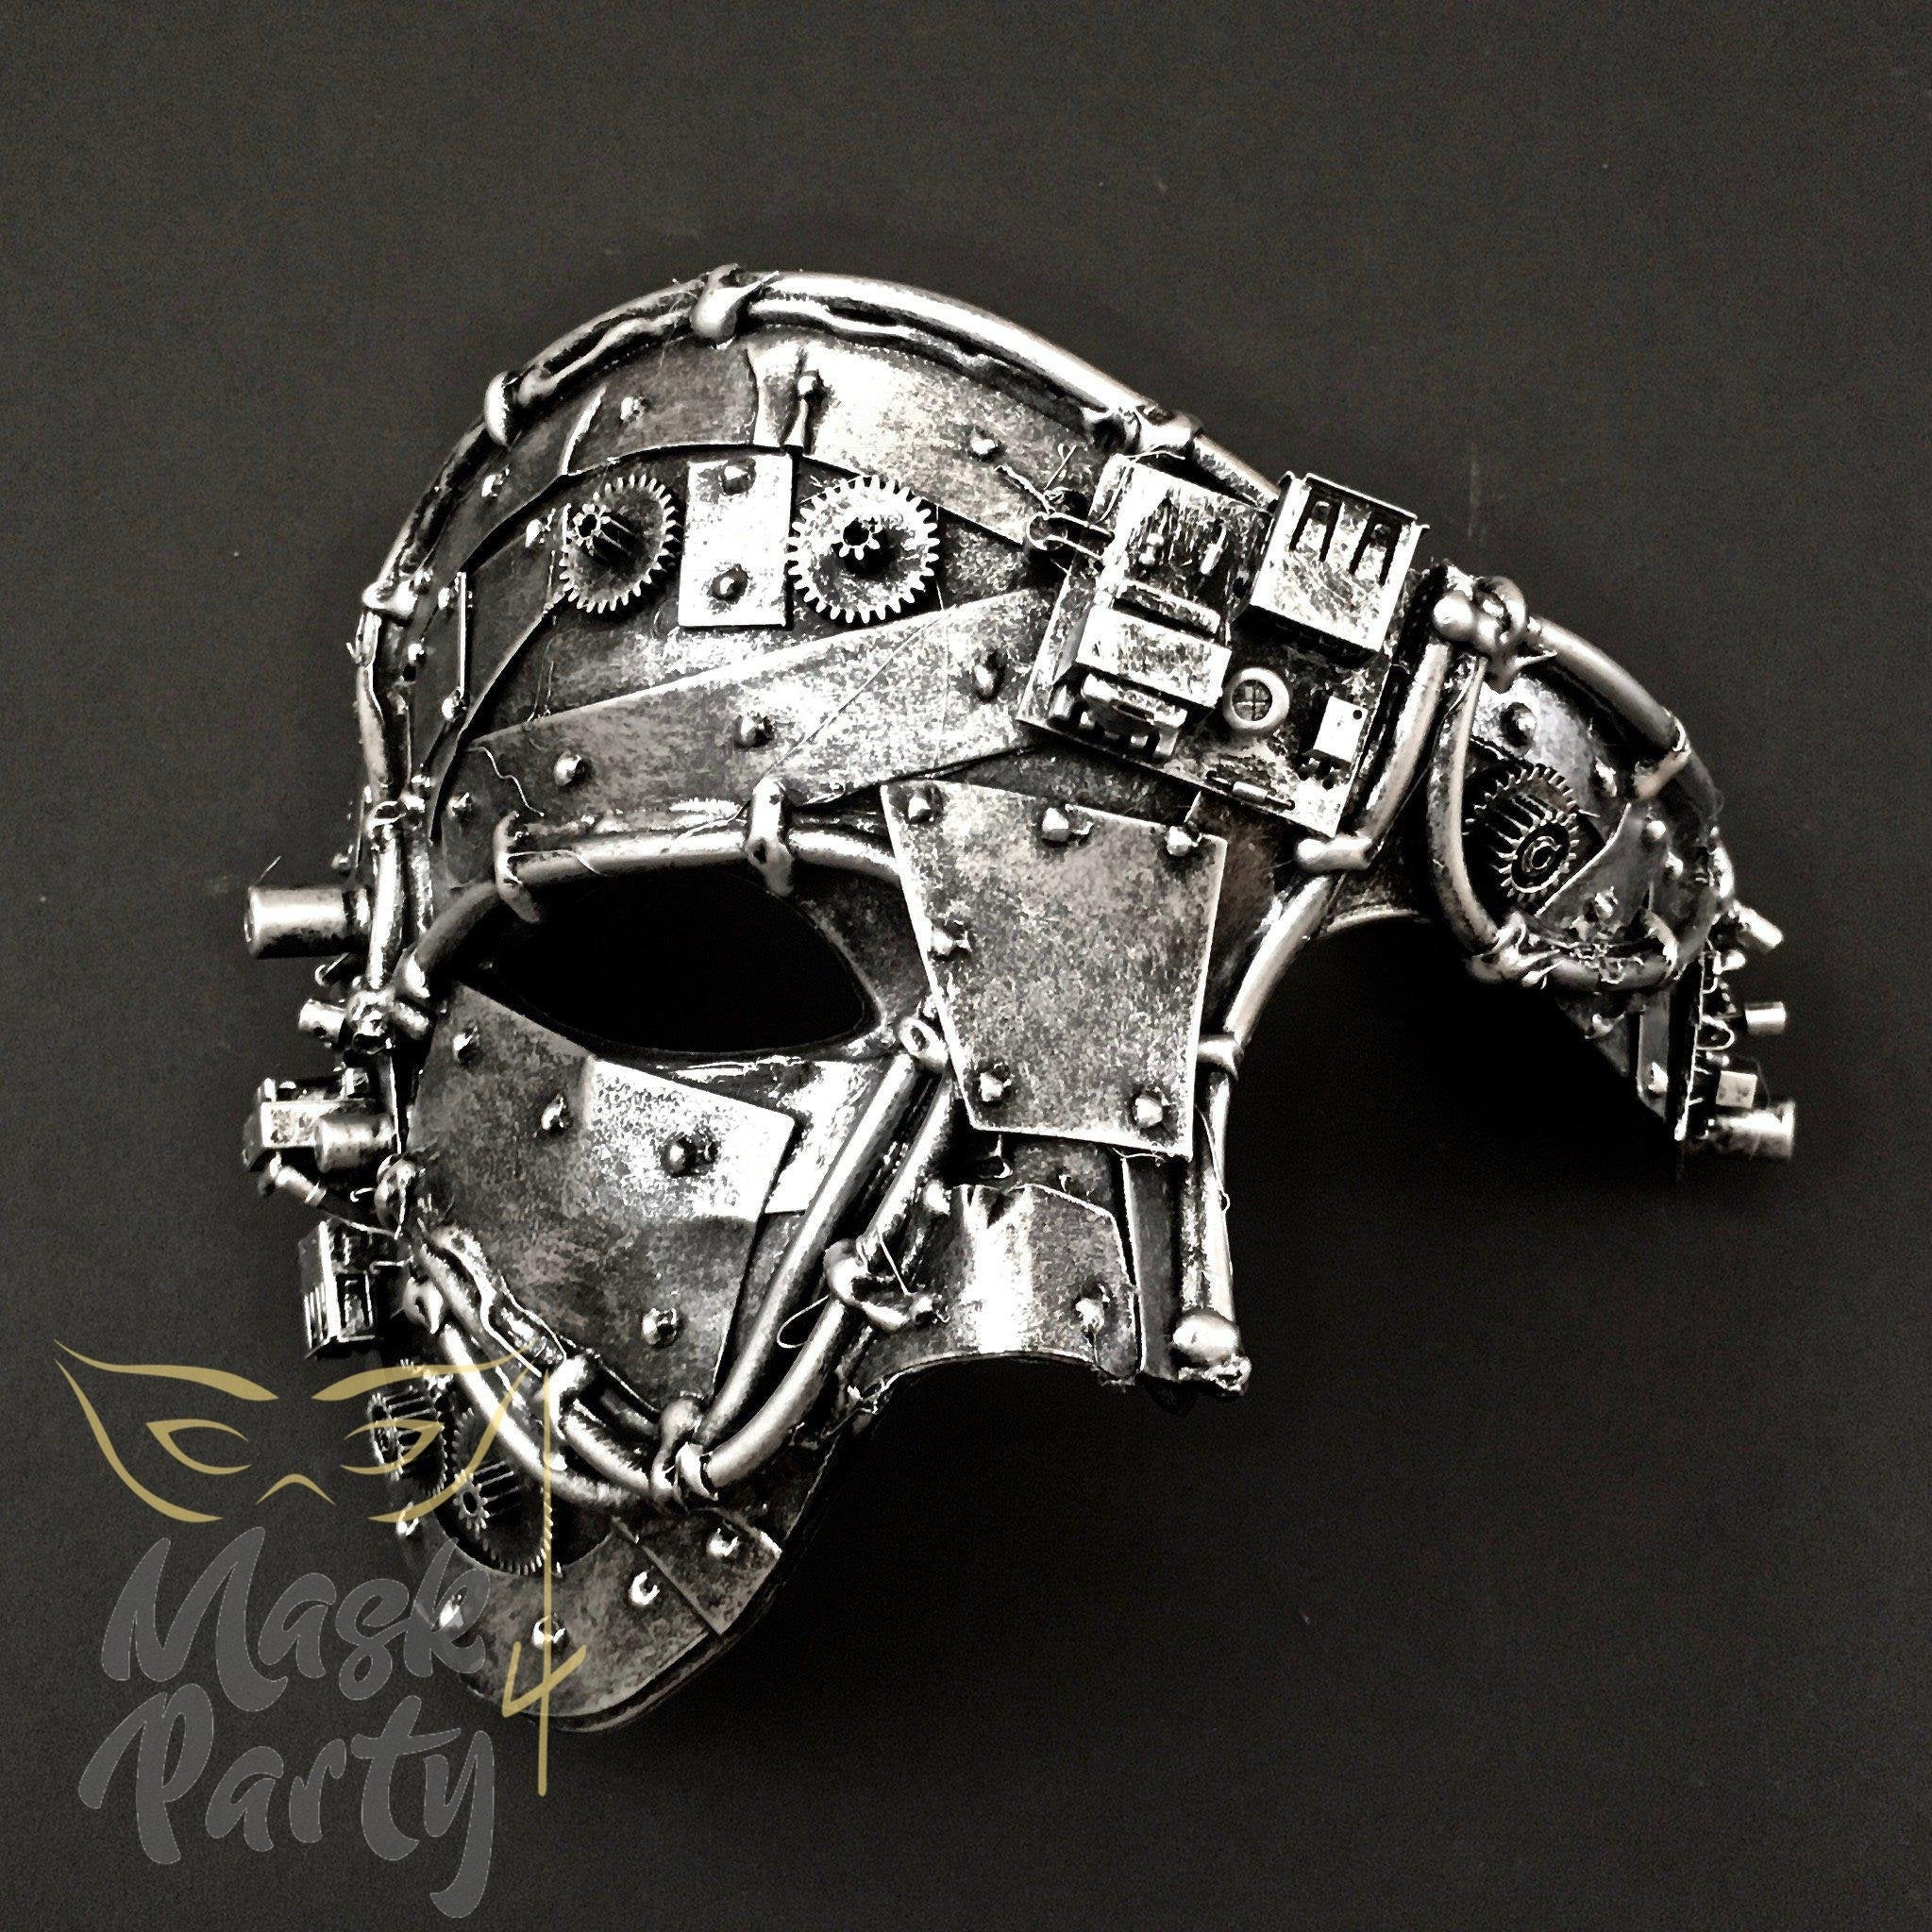 Steampunk Mask - Phantom Gear & Tube - Black/Silver - Mask4Party